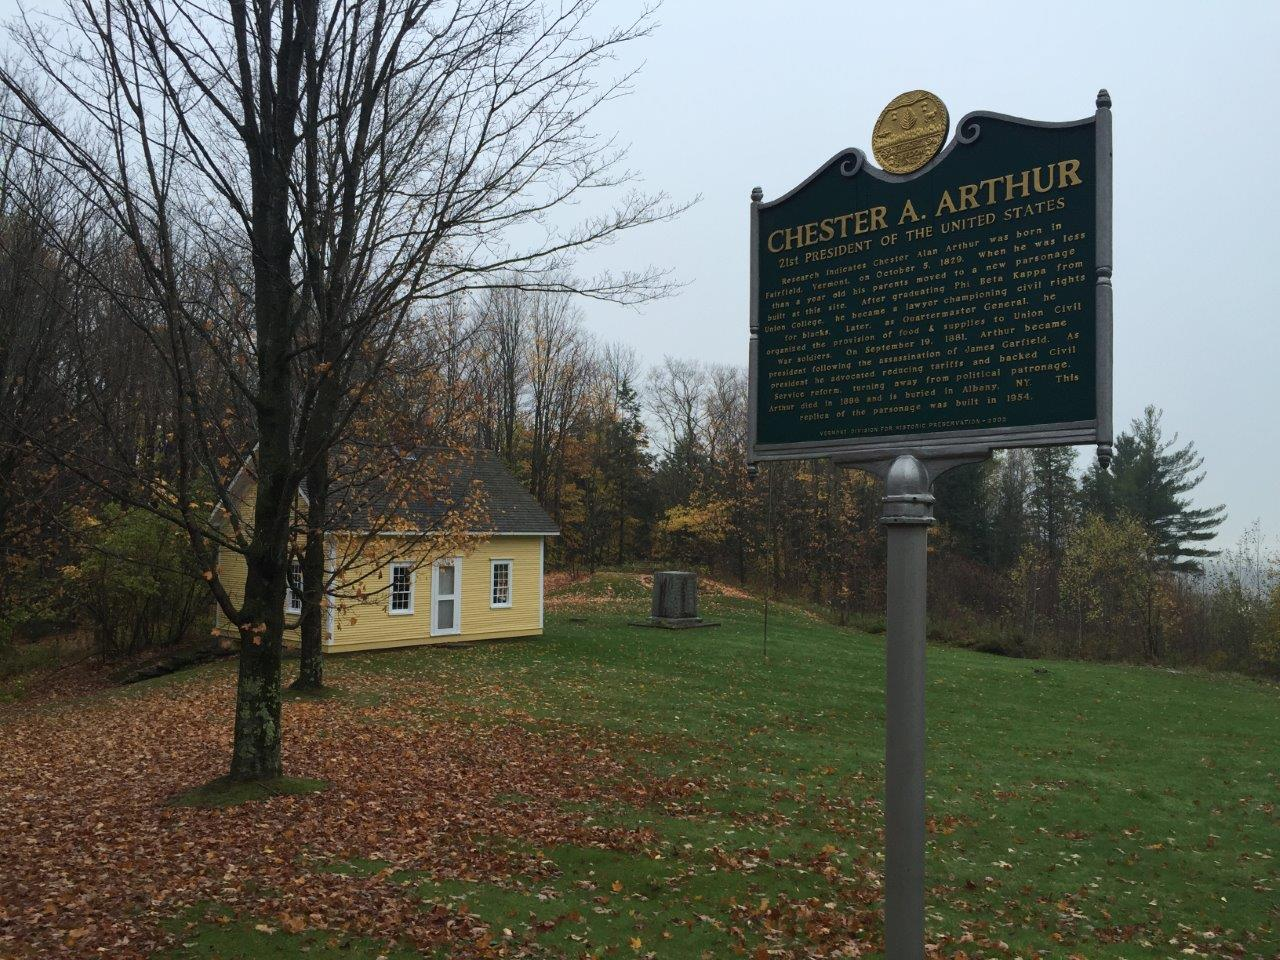 photo of Chester Arthur's home